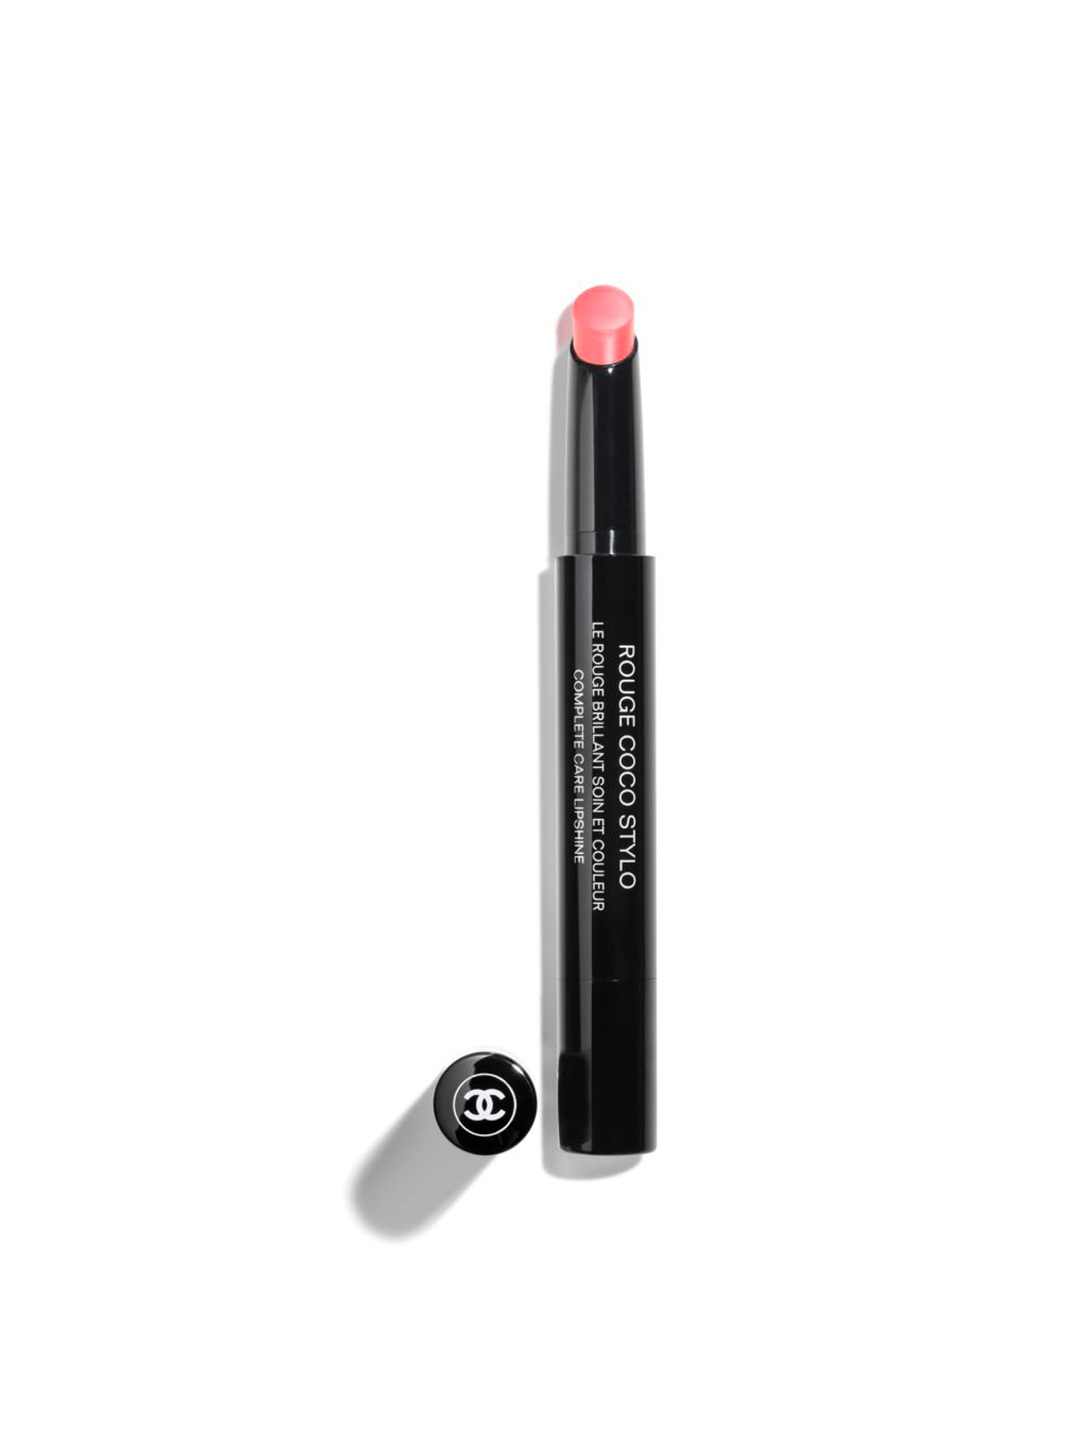 CHANEL Le rouge brillant soin et couleur CHANEL Rose